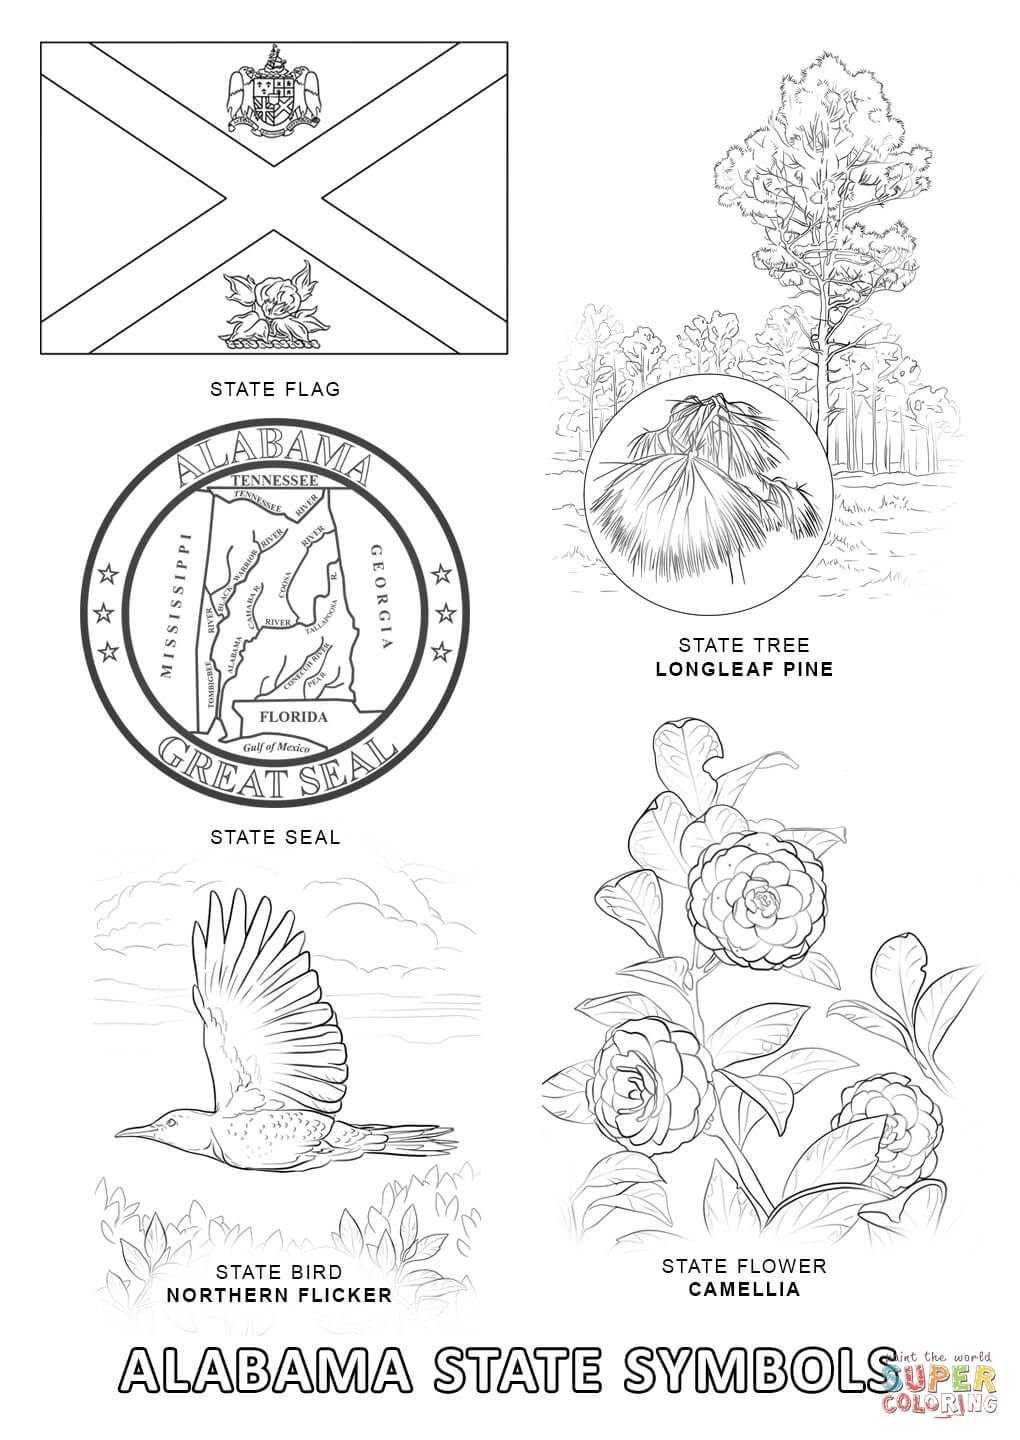 Alabama State Symbols coloring page | Free Printable Coloring Pages